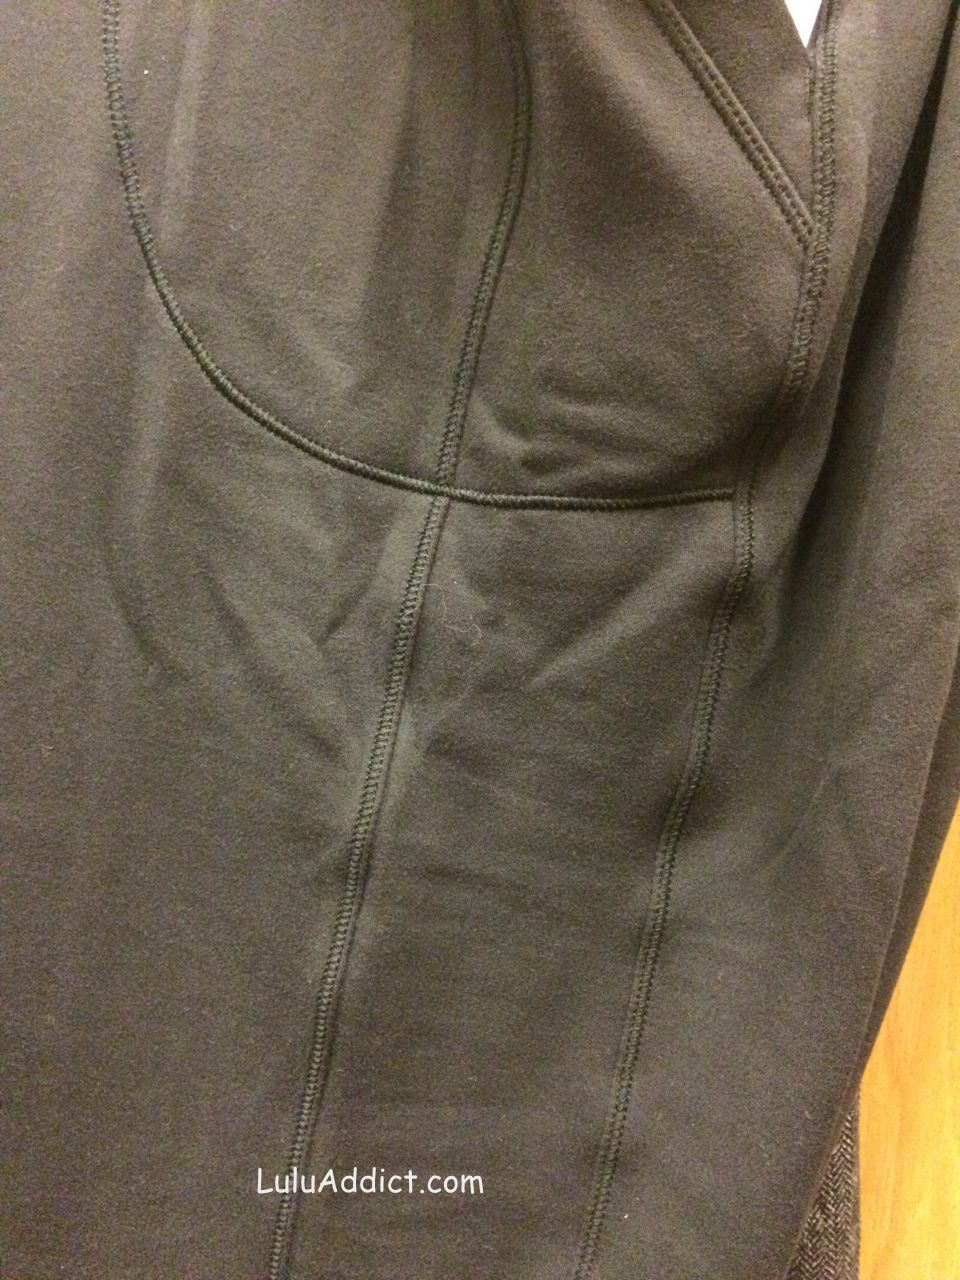 lululemon base runner pant details